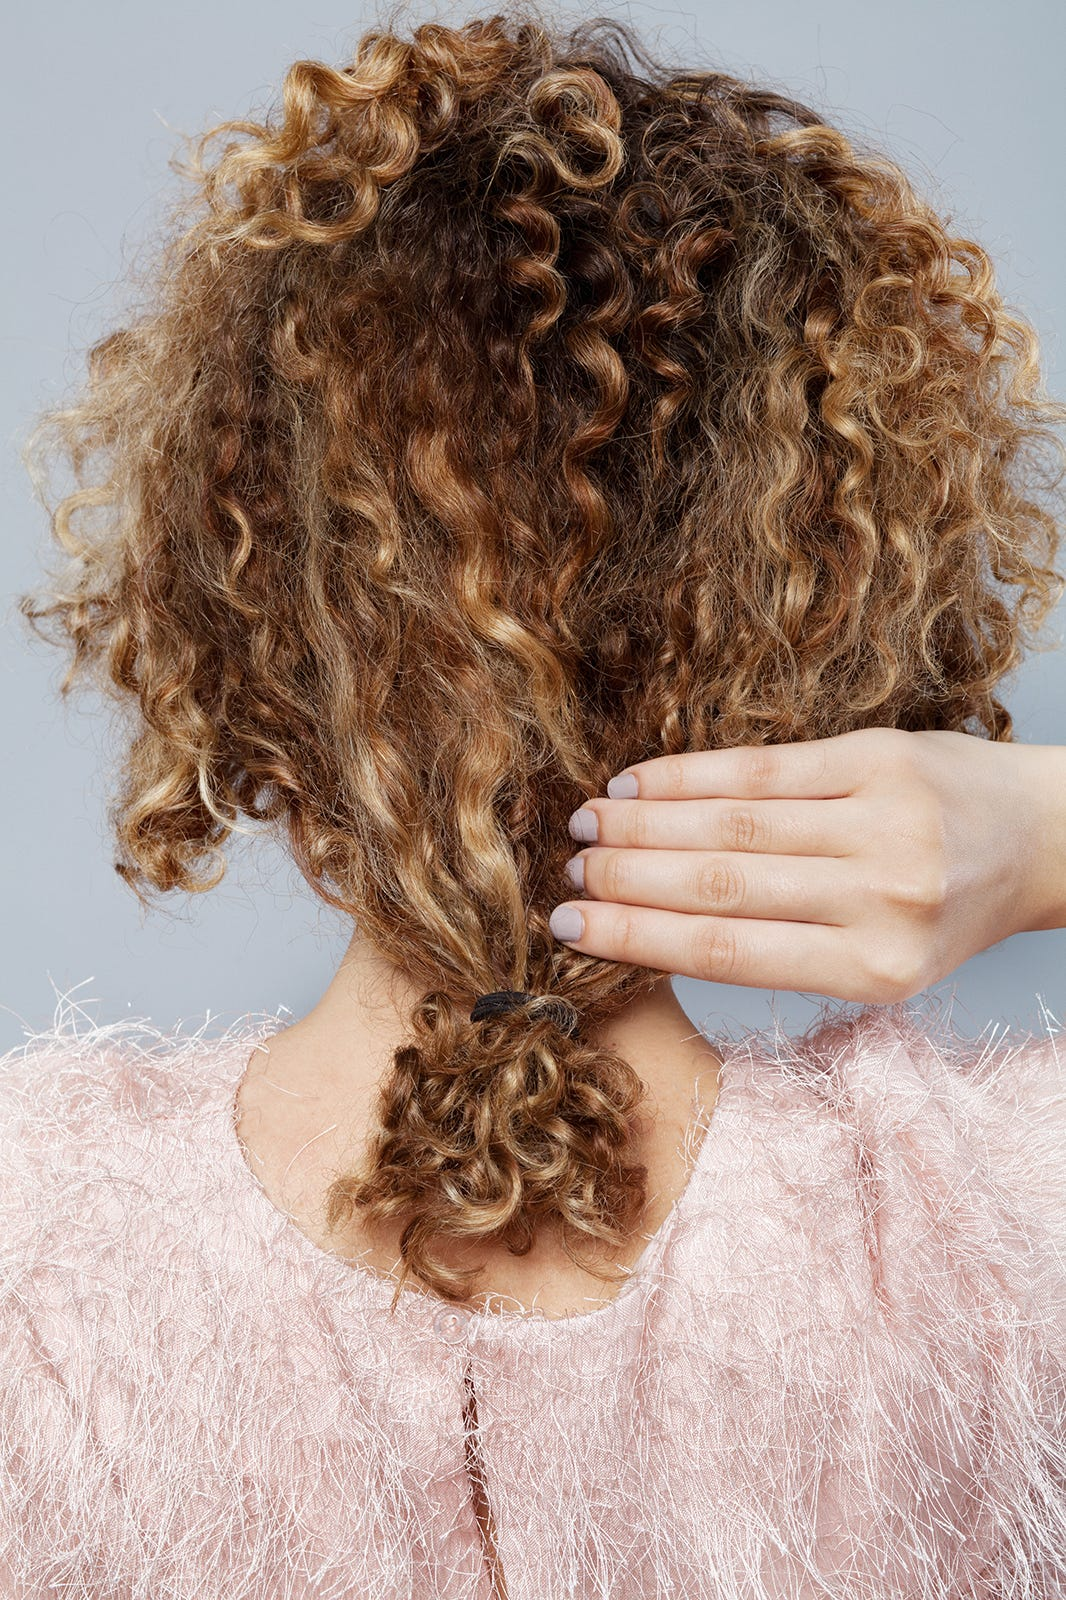 How To Style Curly Hair